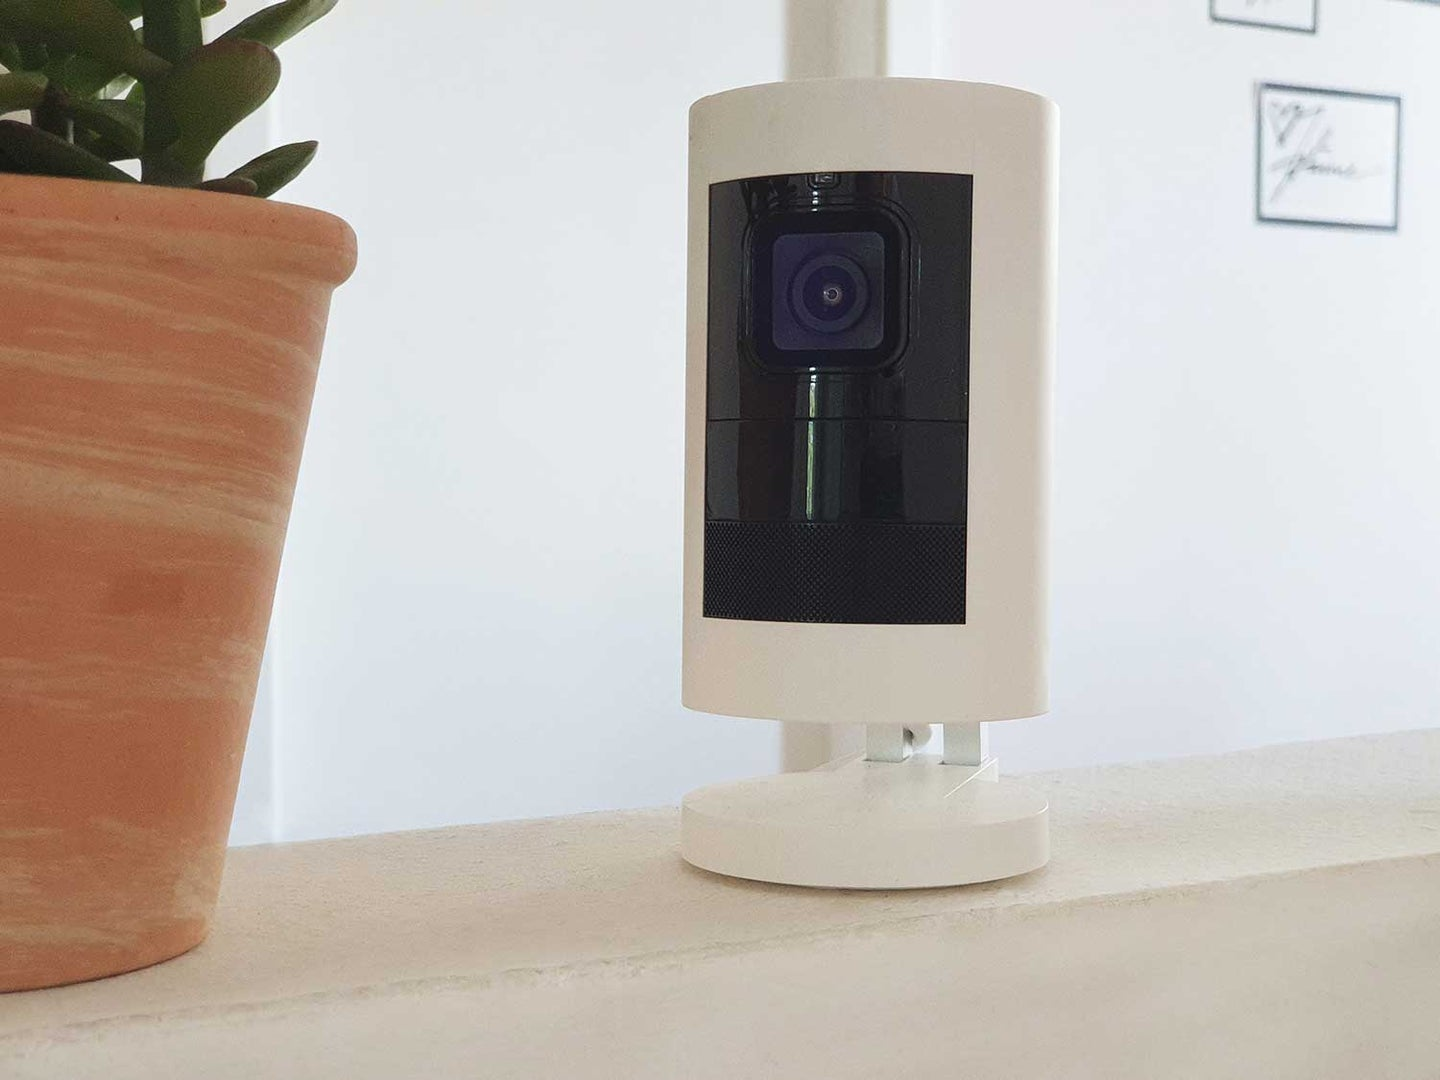 Indoor smart camera on table.